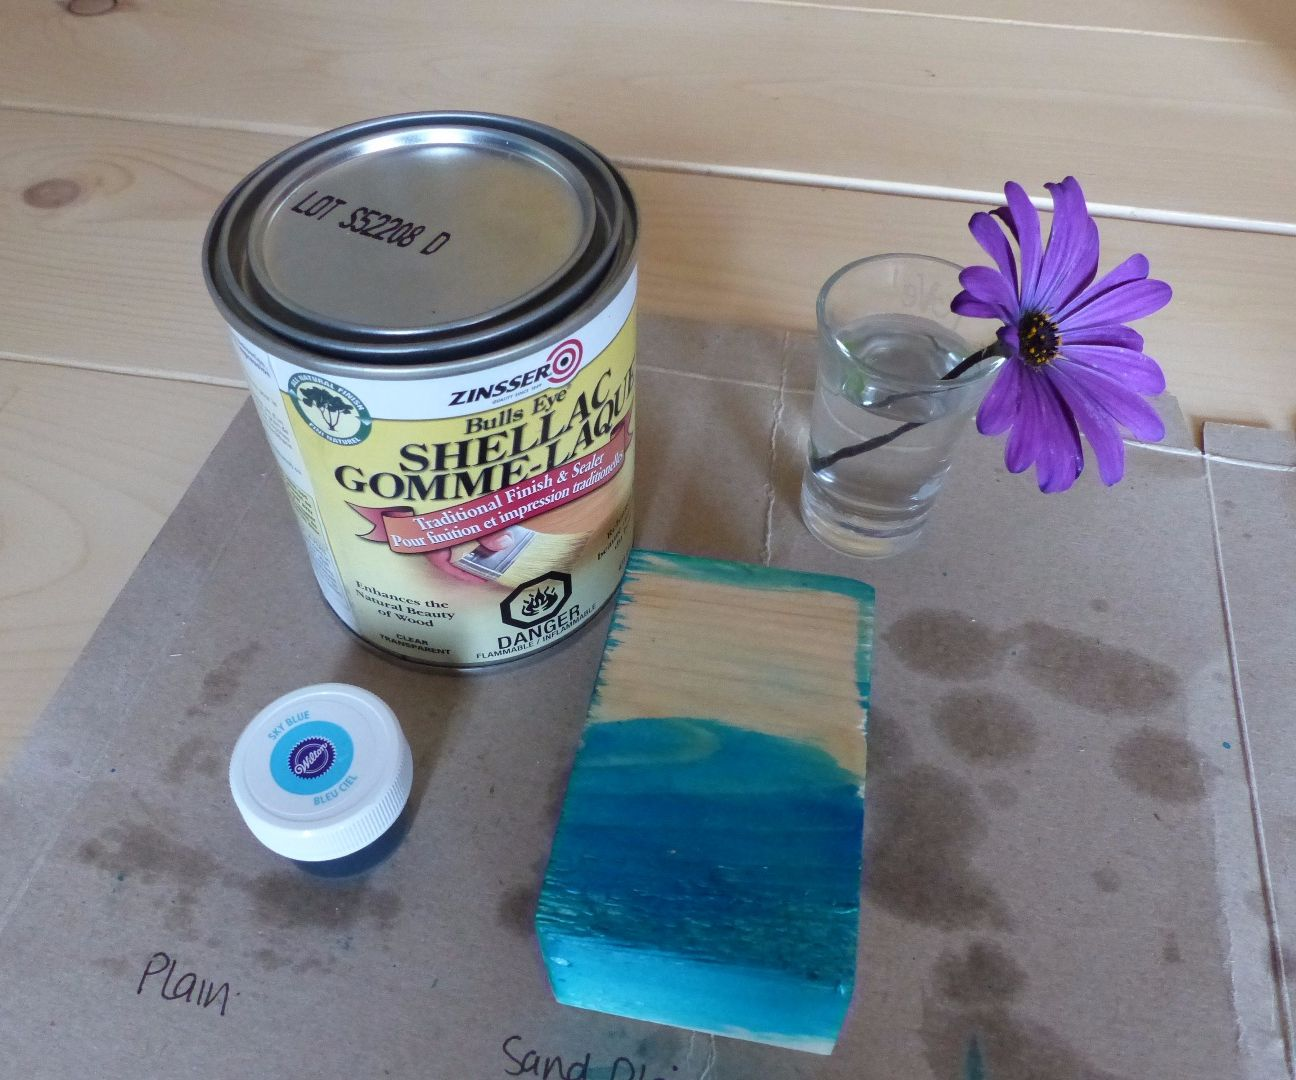 Baby-safe Food-colour Stain for Wood: an Experiment: 3 Steps